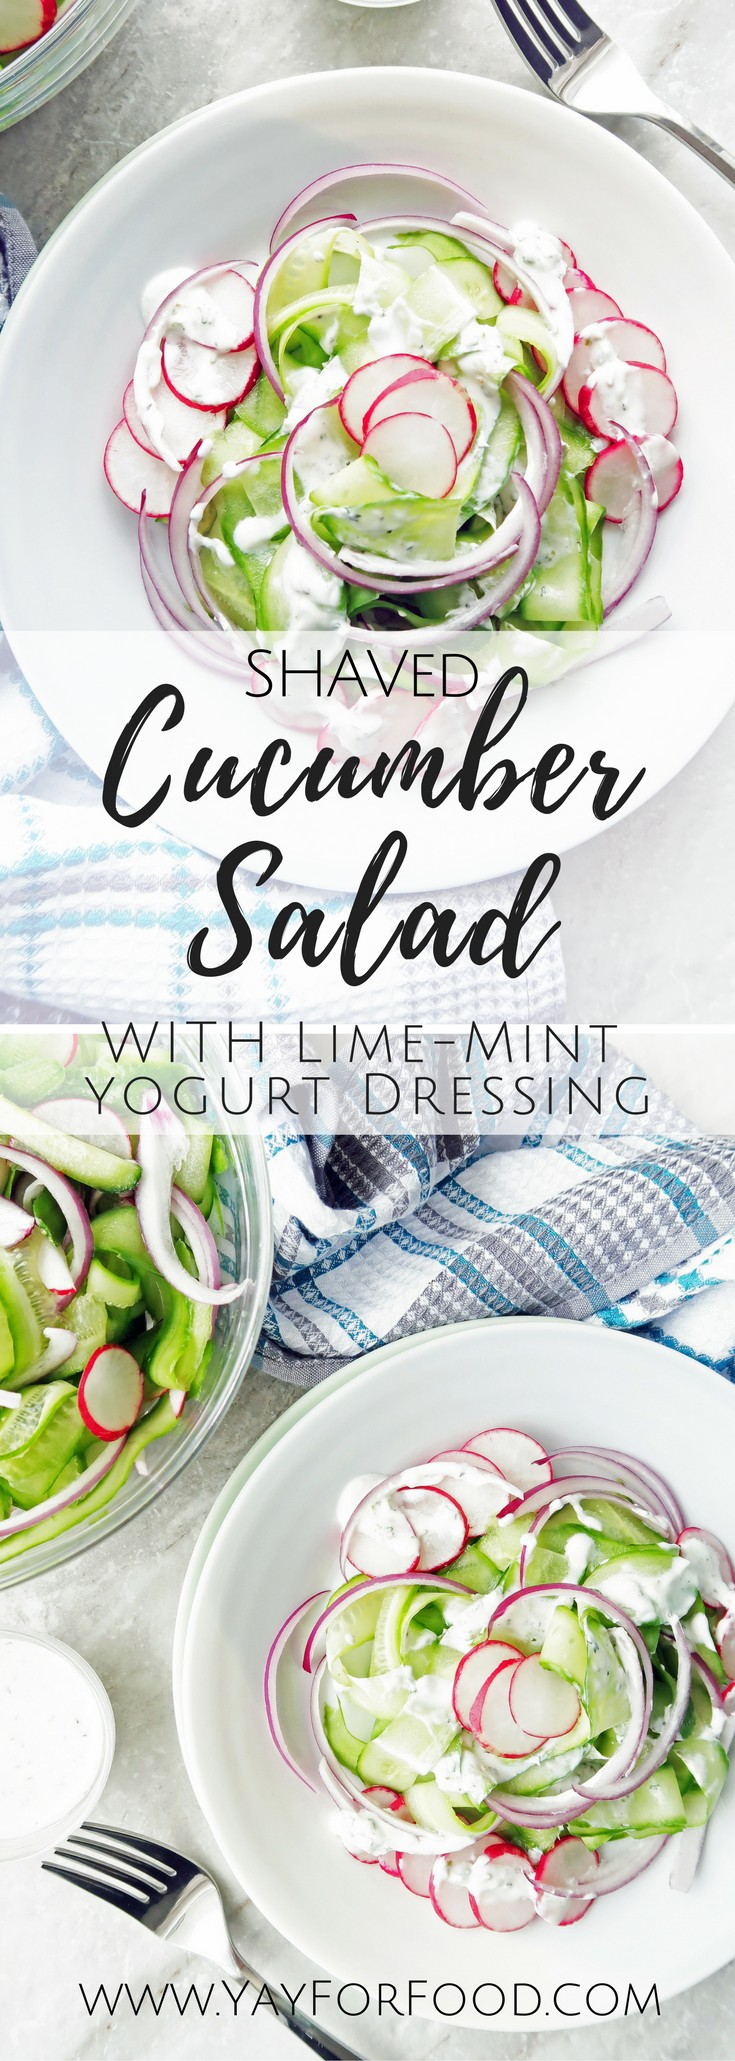 This delicious cucumber salad with homemade lime-mint yogurt dressing is healthy, refreshing, ready in ten minutes, and goes wonderfully as a side dish for chicken, beef, or fish.